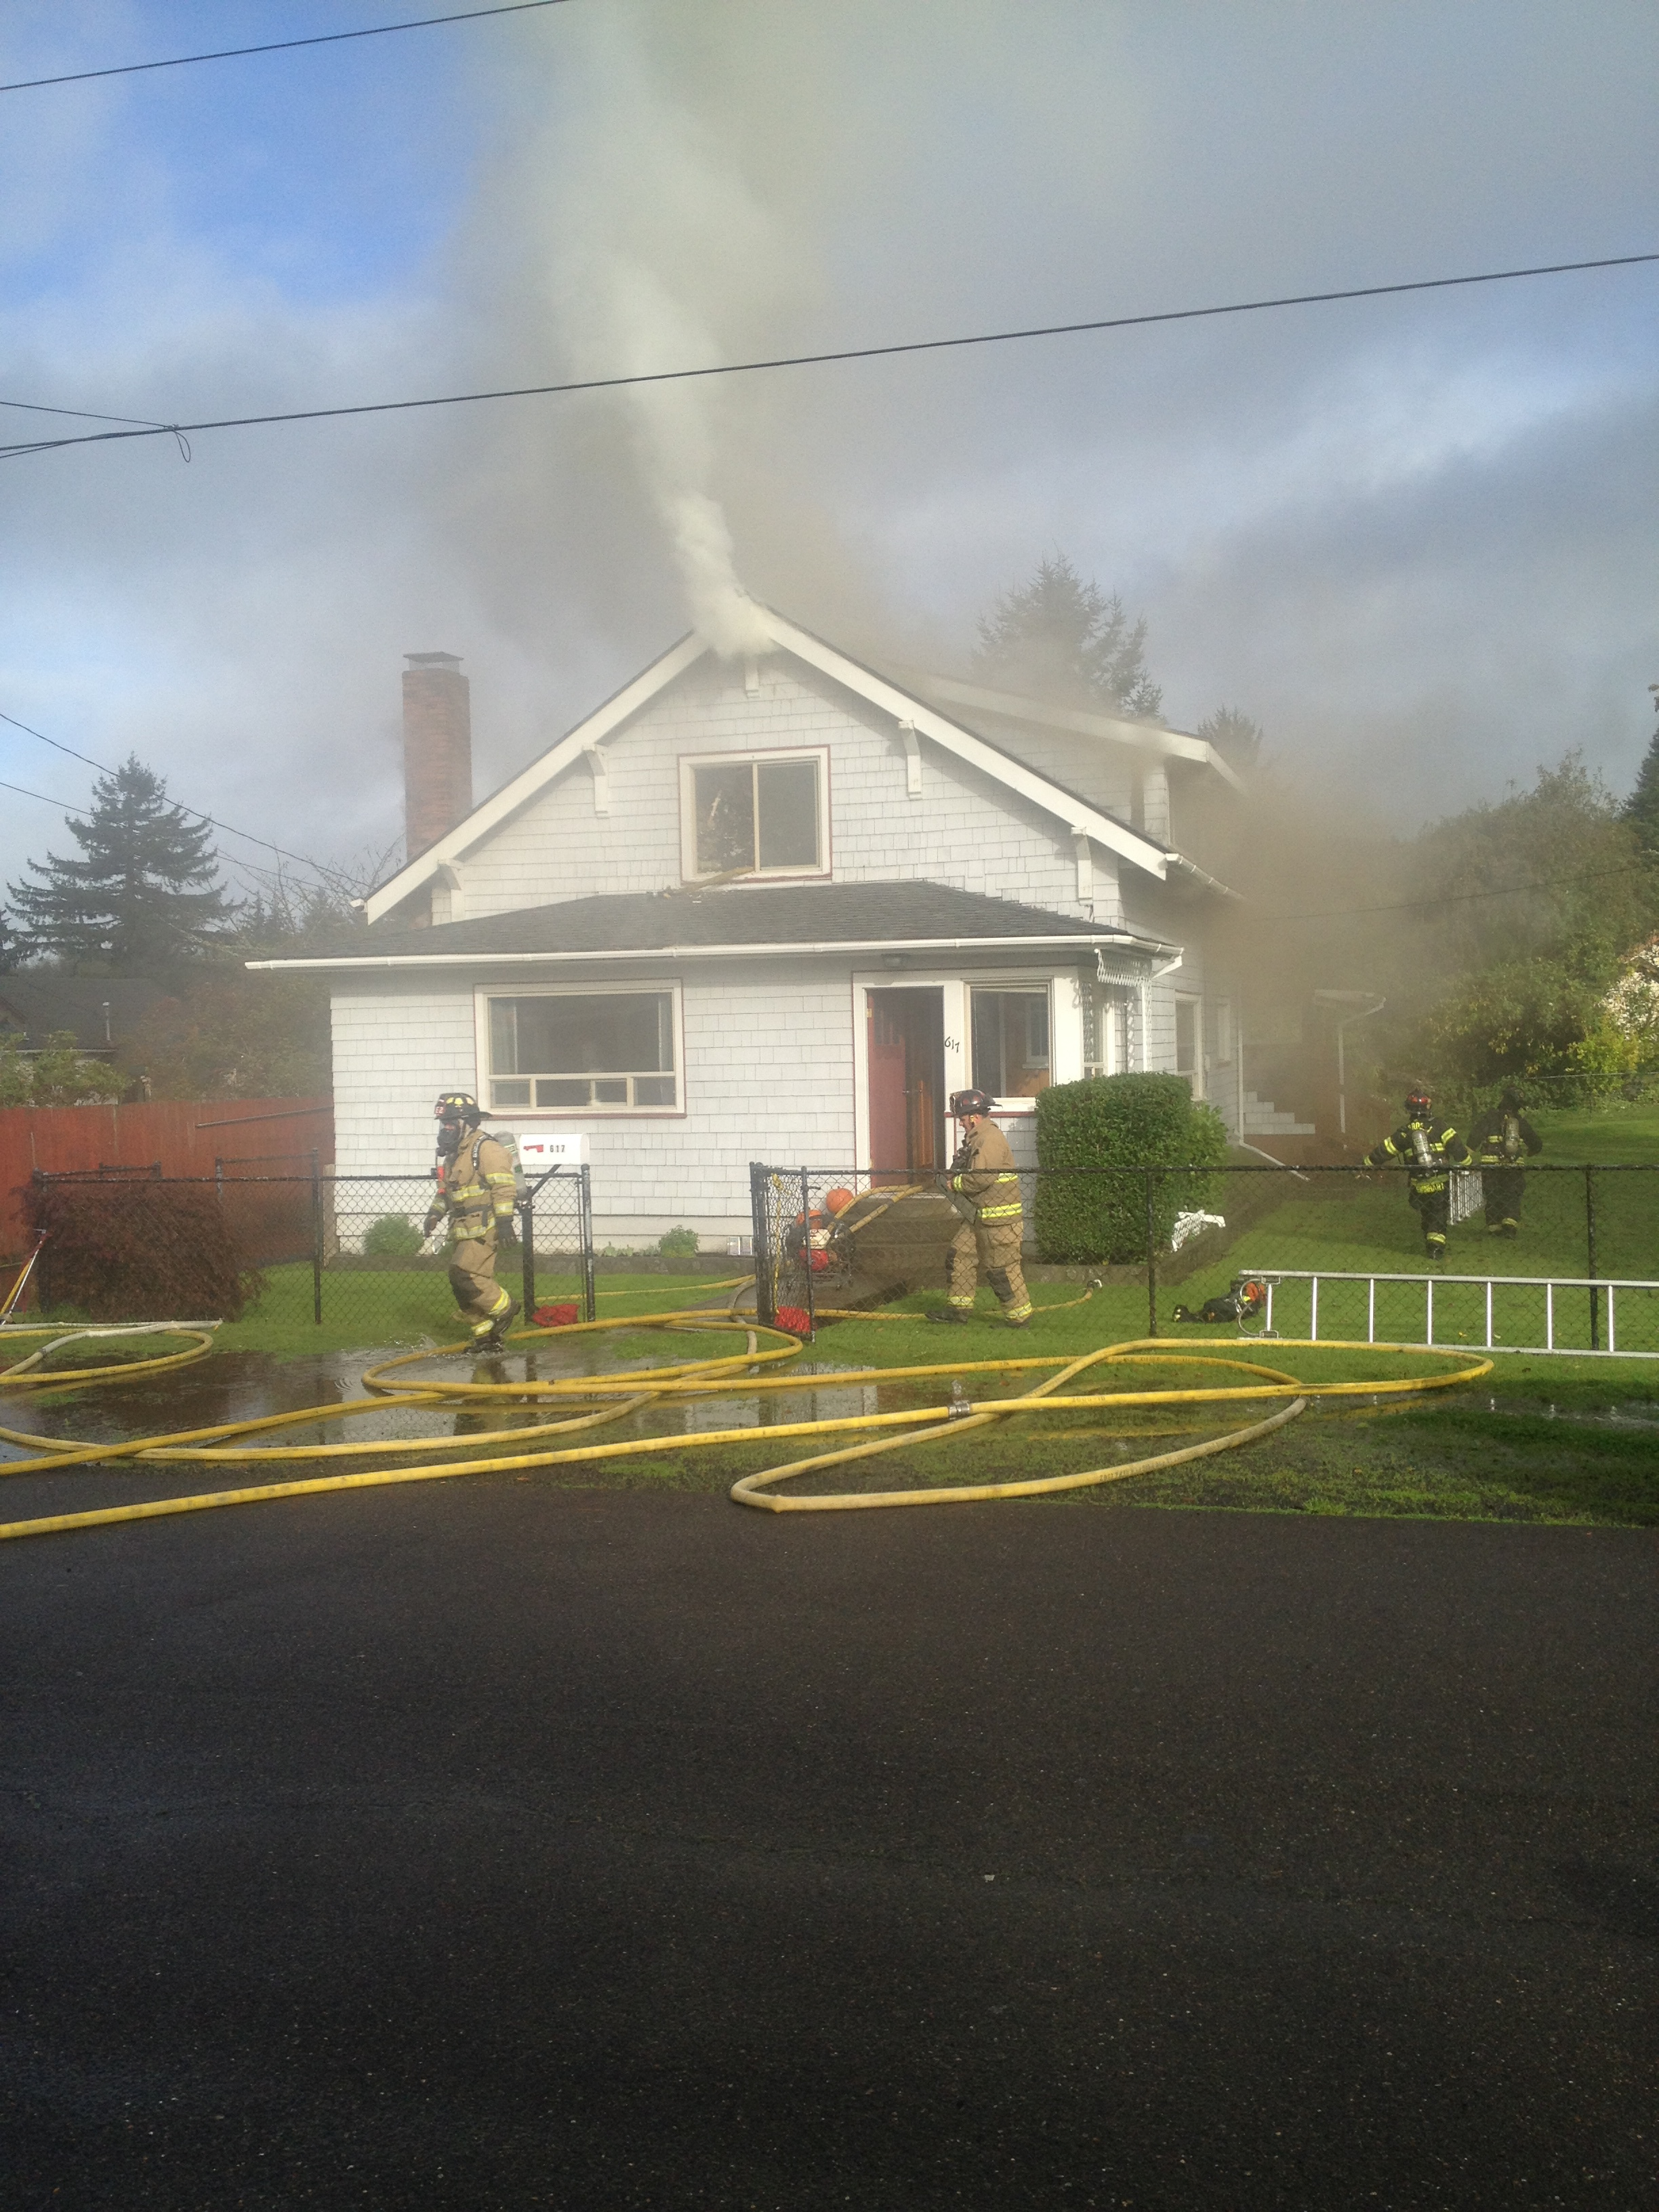 Hoquiam house fire started near wood insert stove